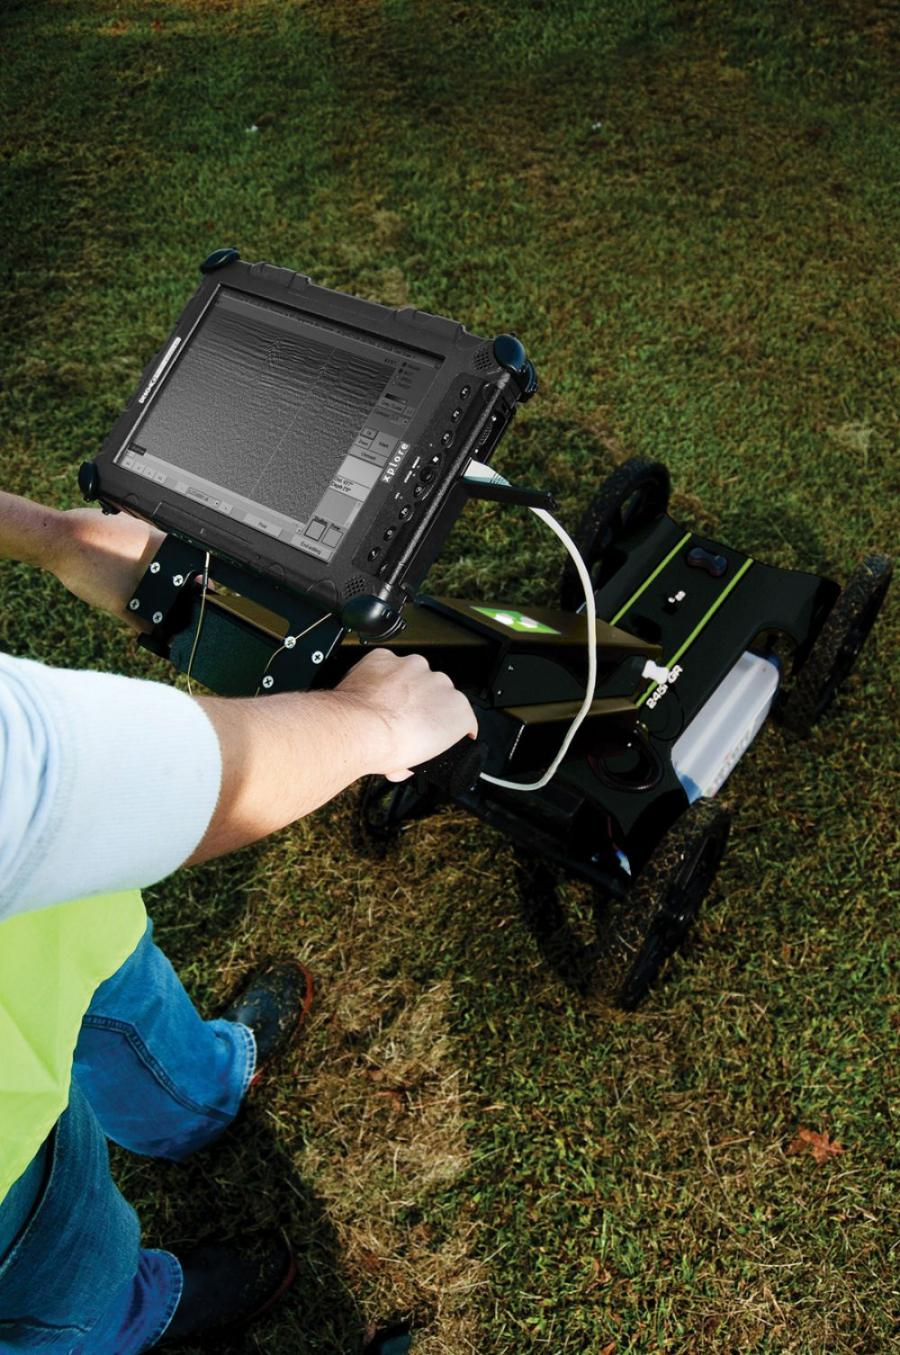 Designed for contractors and utility engineers, the Subsite Electronics 2450GR ground penetrating radar system is instrumental in utility mapping efforts.